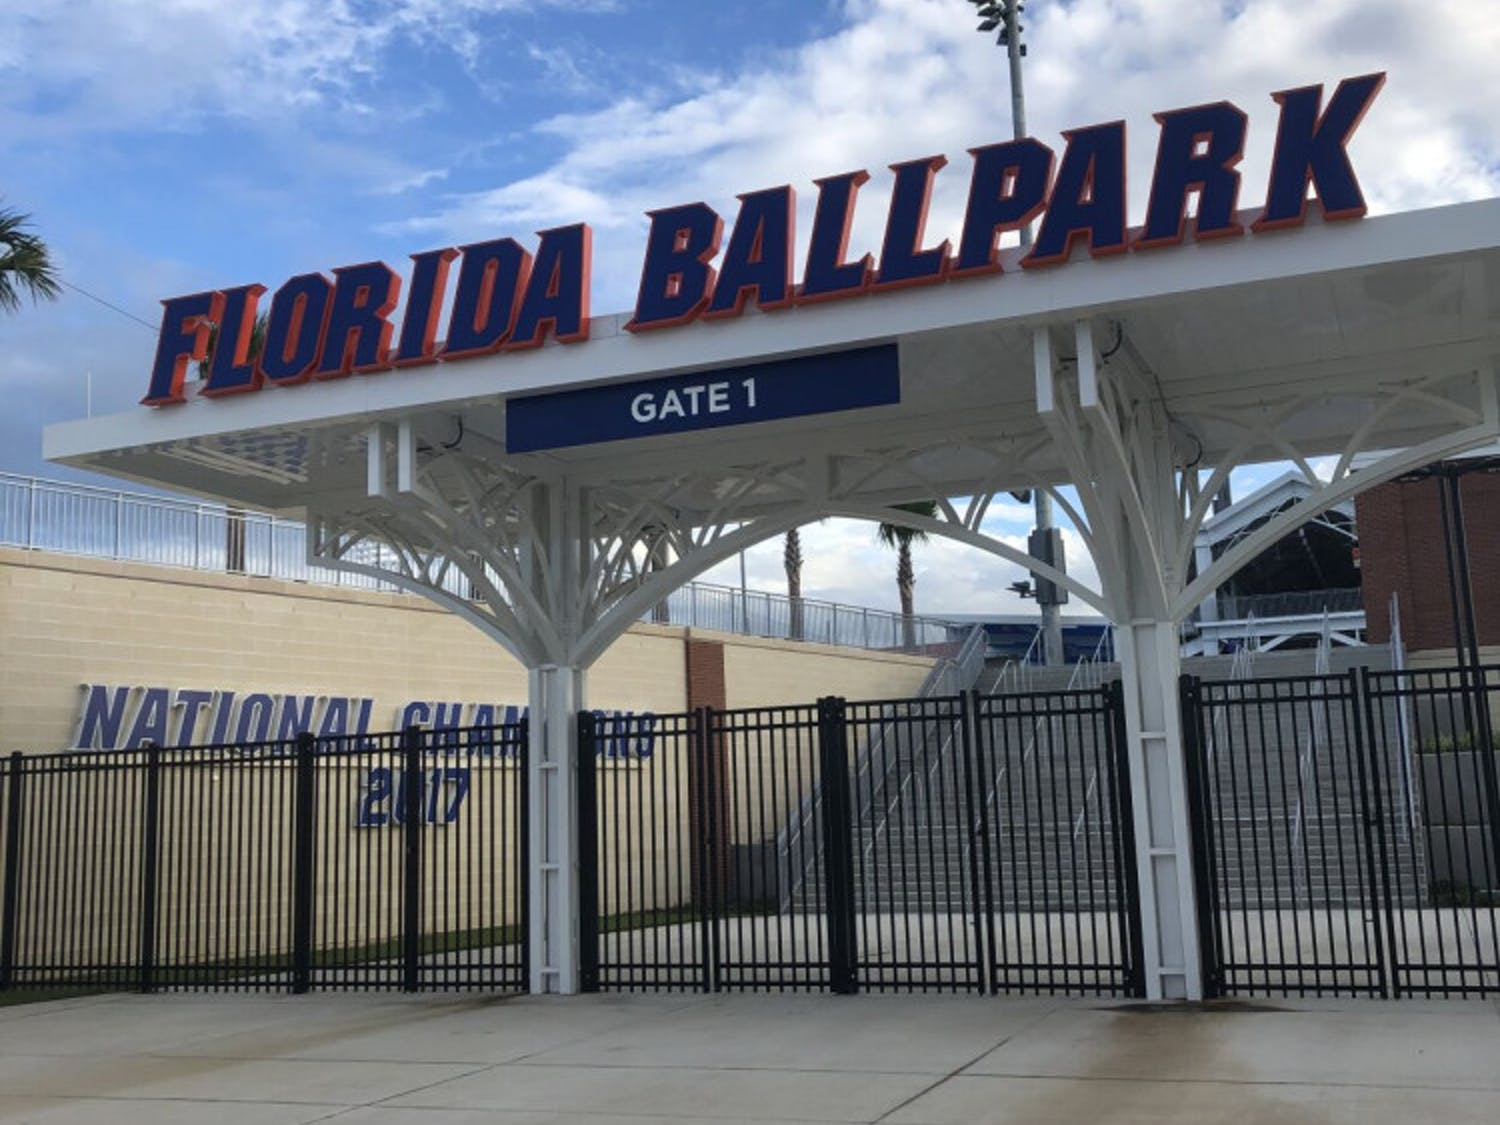 Gate 1 of Florida Ballpark. The new stadium, located next to Donald R. Dizney Stadium along Hull Road, has a capacity of over 7,000.